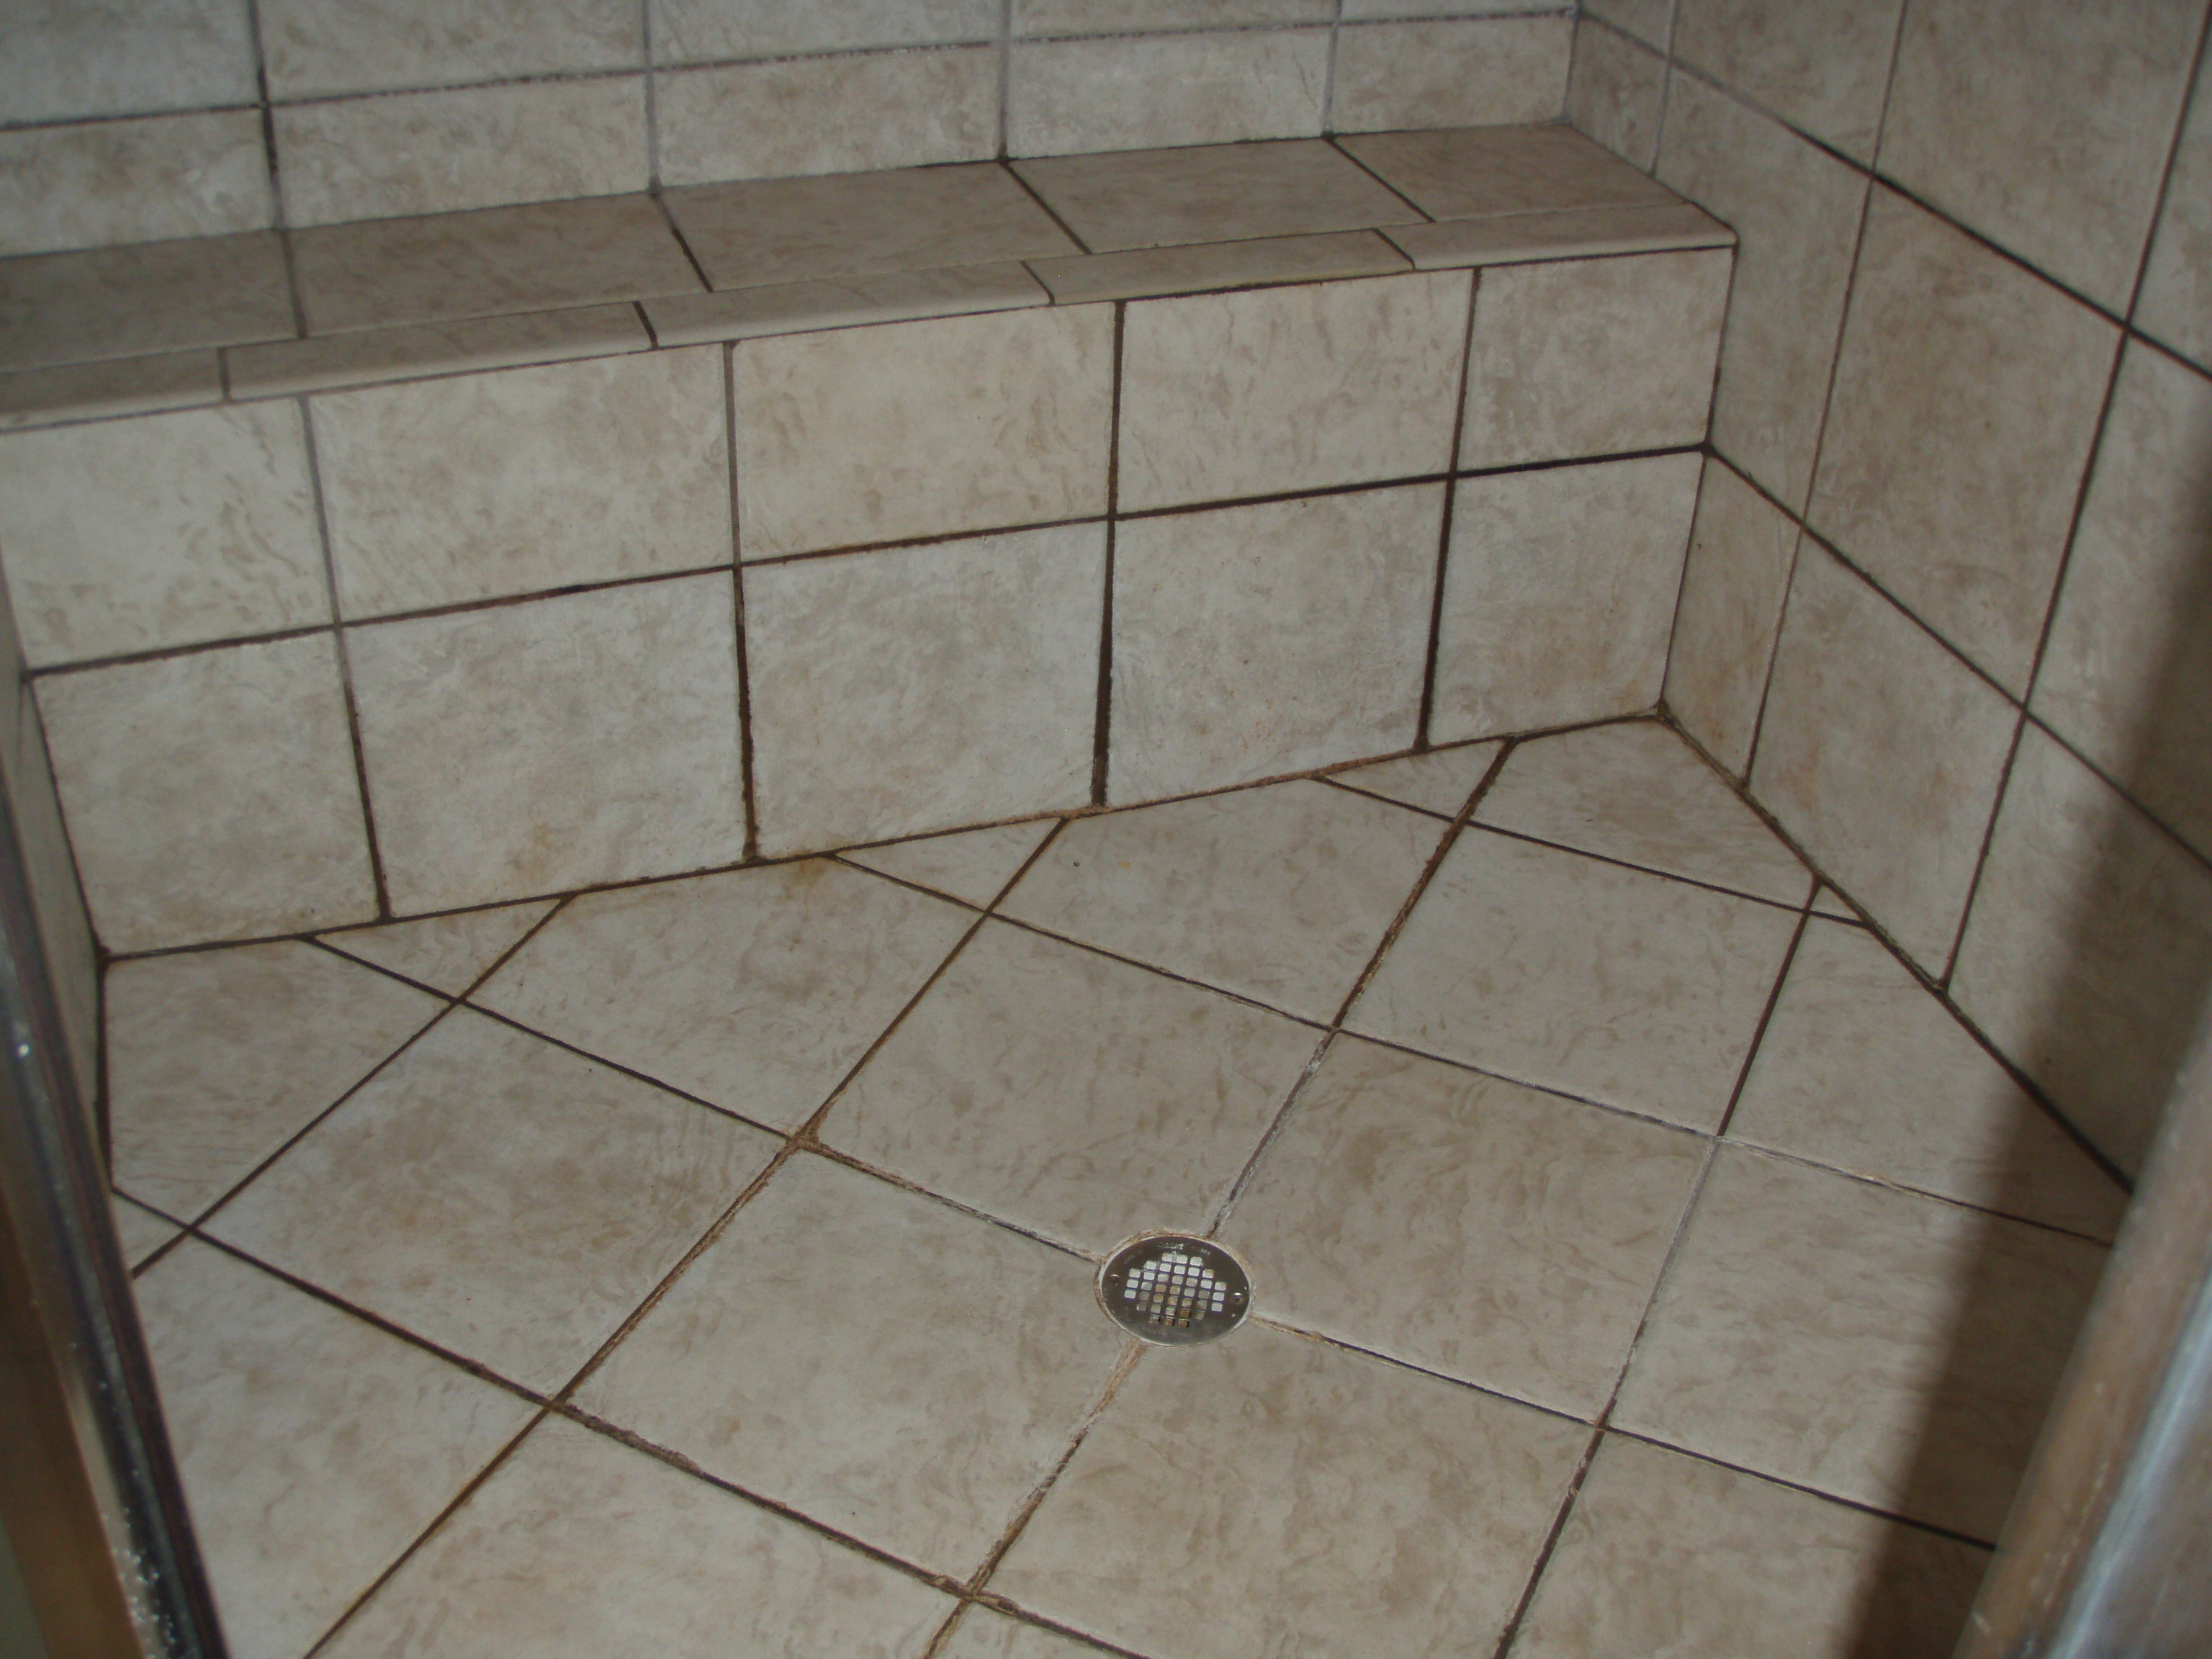 carolina grout works before and after photos of tile grout cleaning